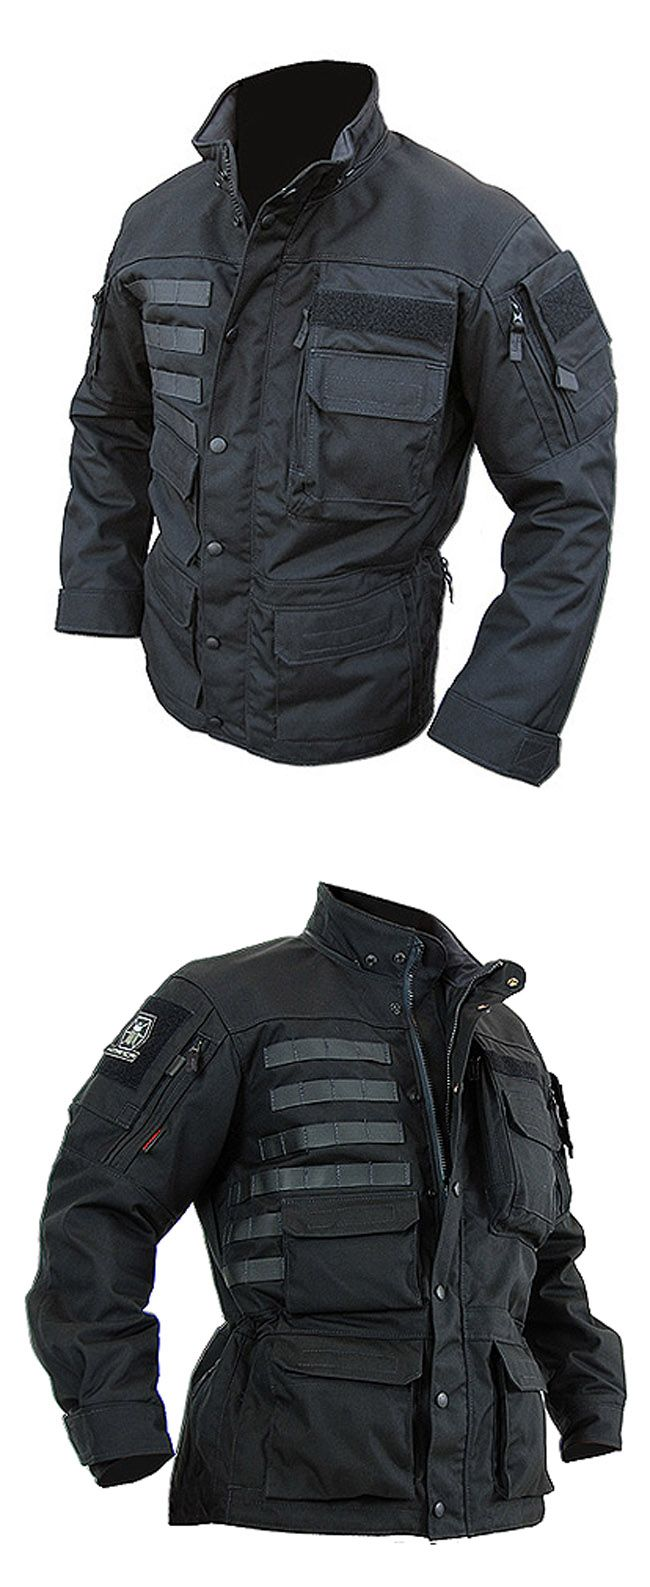 Kitanica Mark V Jacket                                                                                                                                                                                 More